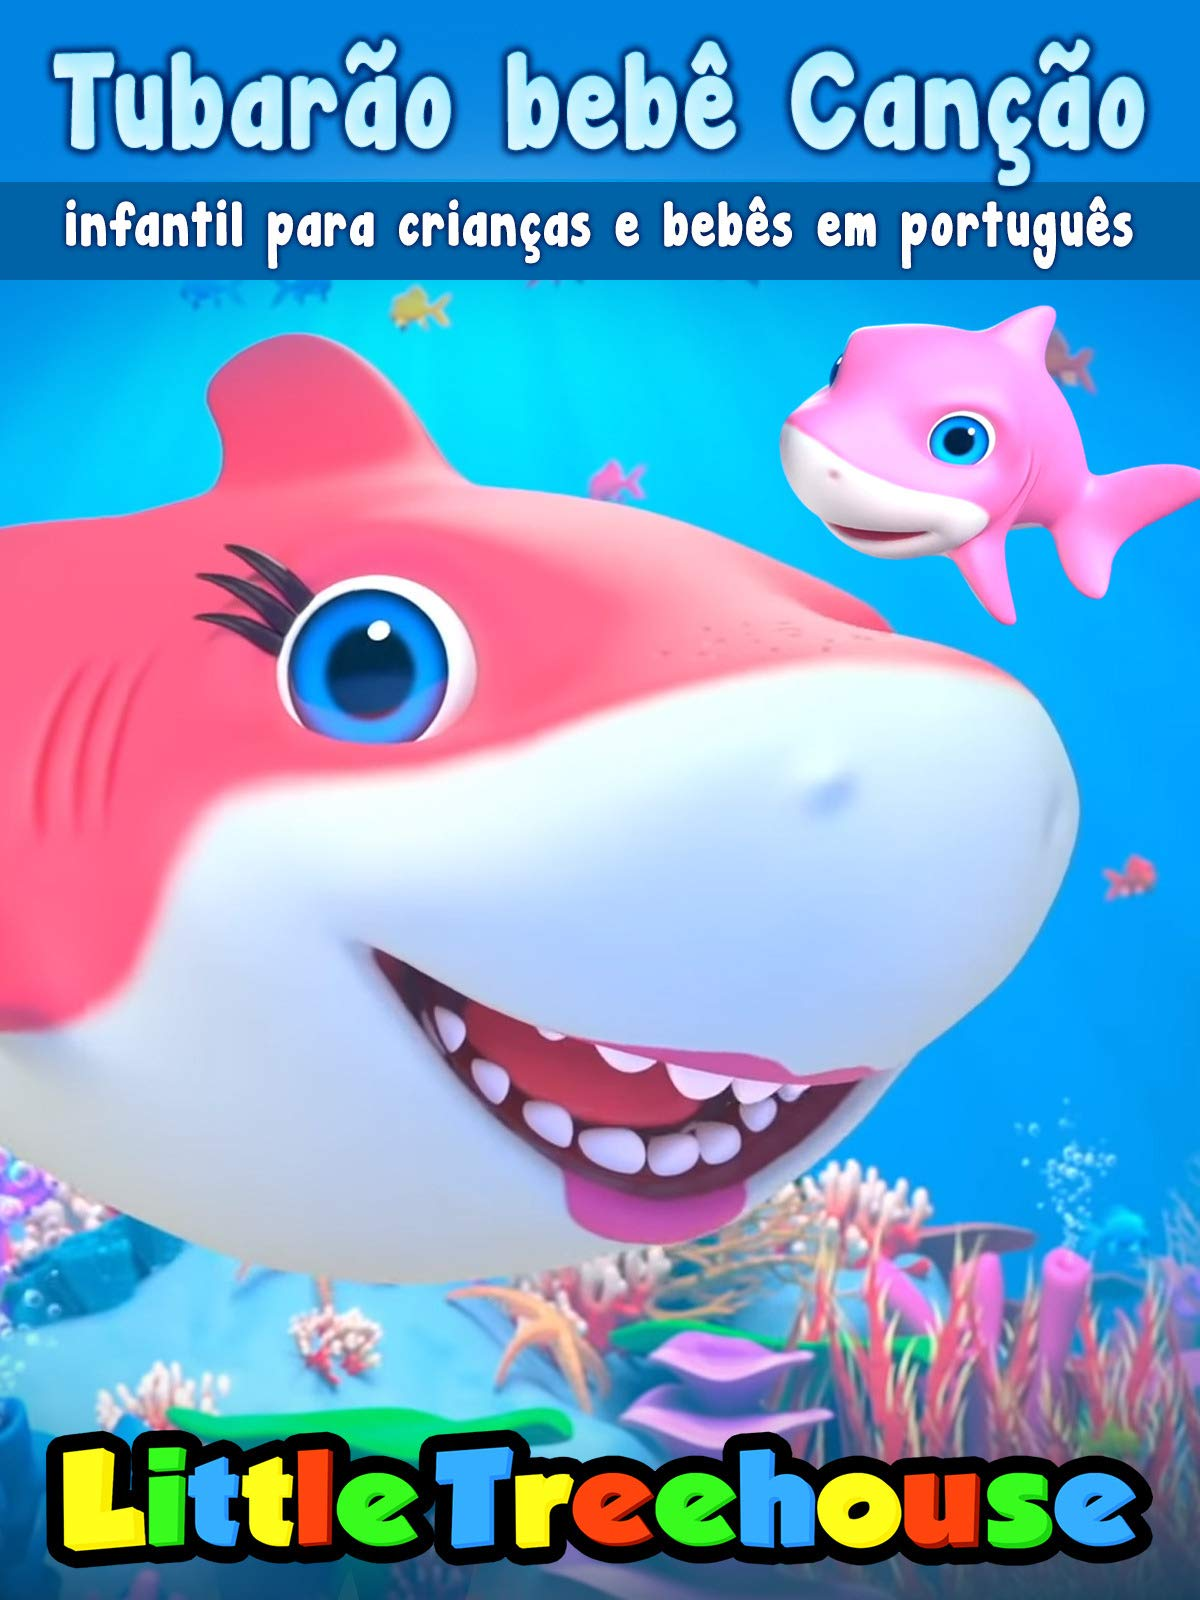 Baby Shark Children's Song for Children and Babies in Portuguese